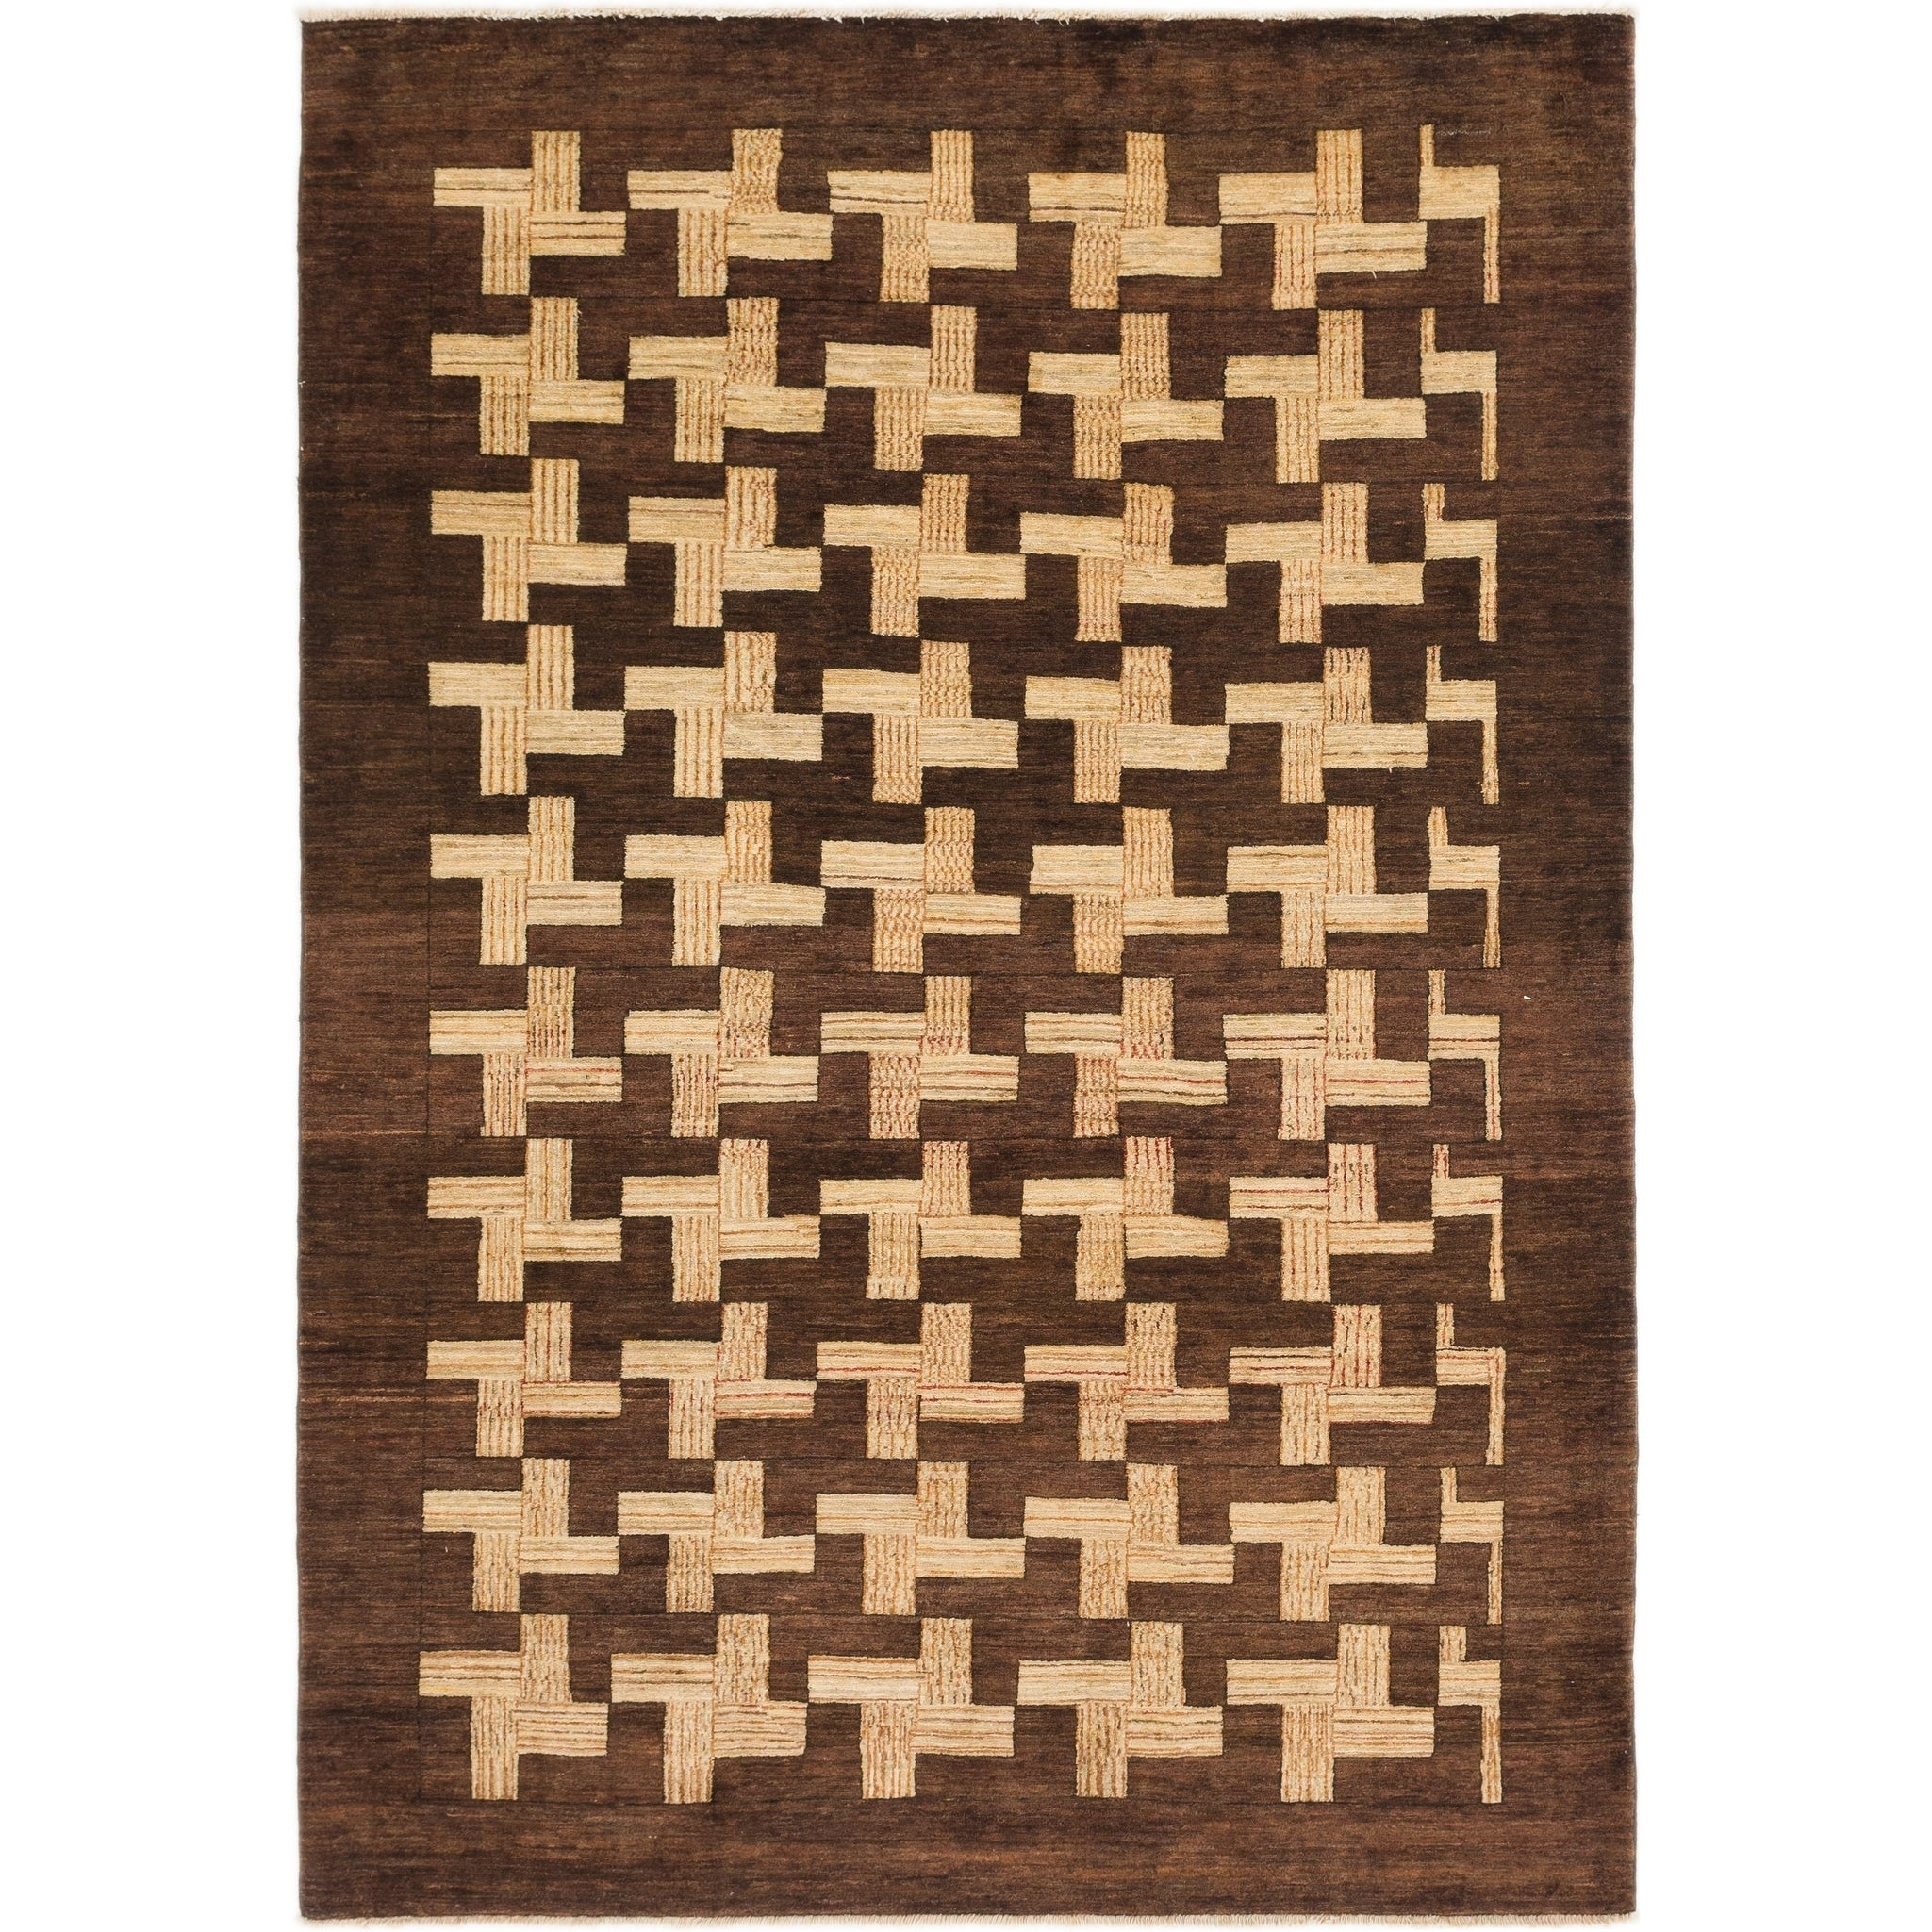 Hand Knotted Kashkuli Gabbeh Wool Area Rug - 6 2 x 8 8 (Brown - 6 2 x 8 8)